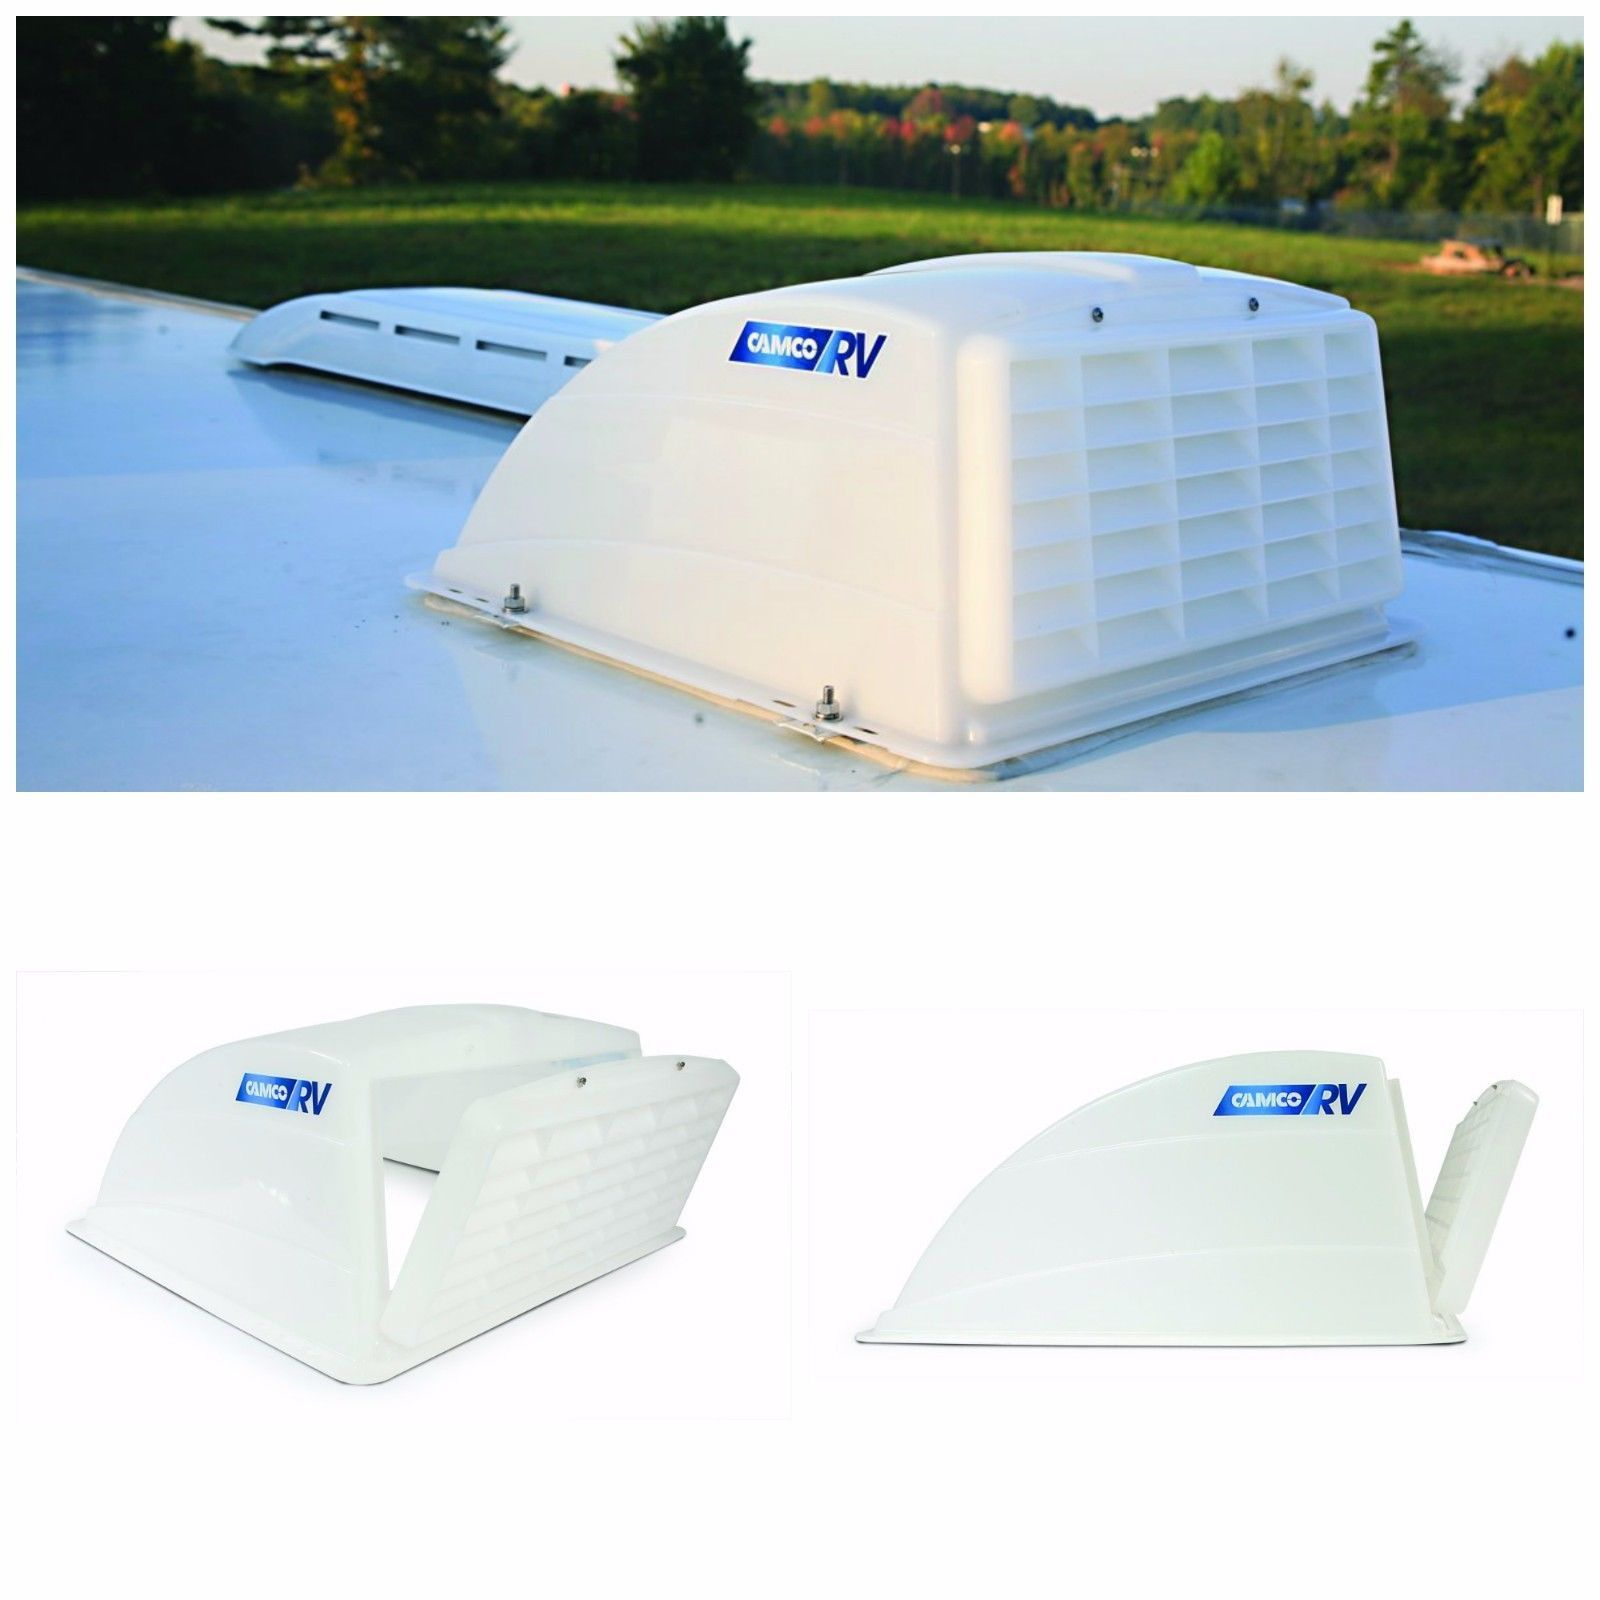 Rv Roof Vent Cover Camper Parts And Accessories Roof Vents For Rv Camco White Roof Vent Covers Camper Parts Vent Covers